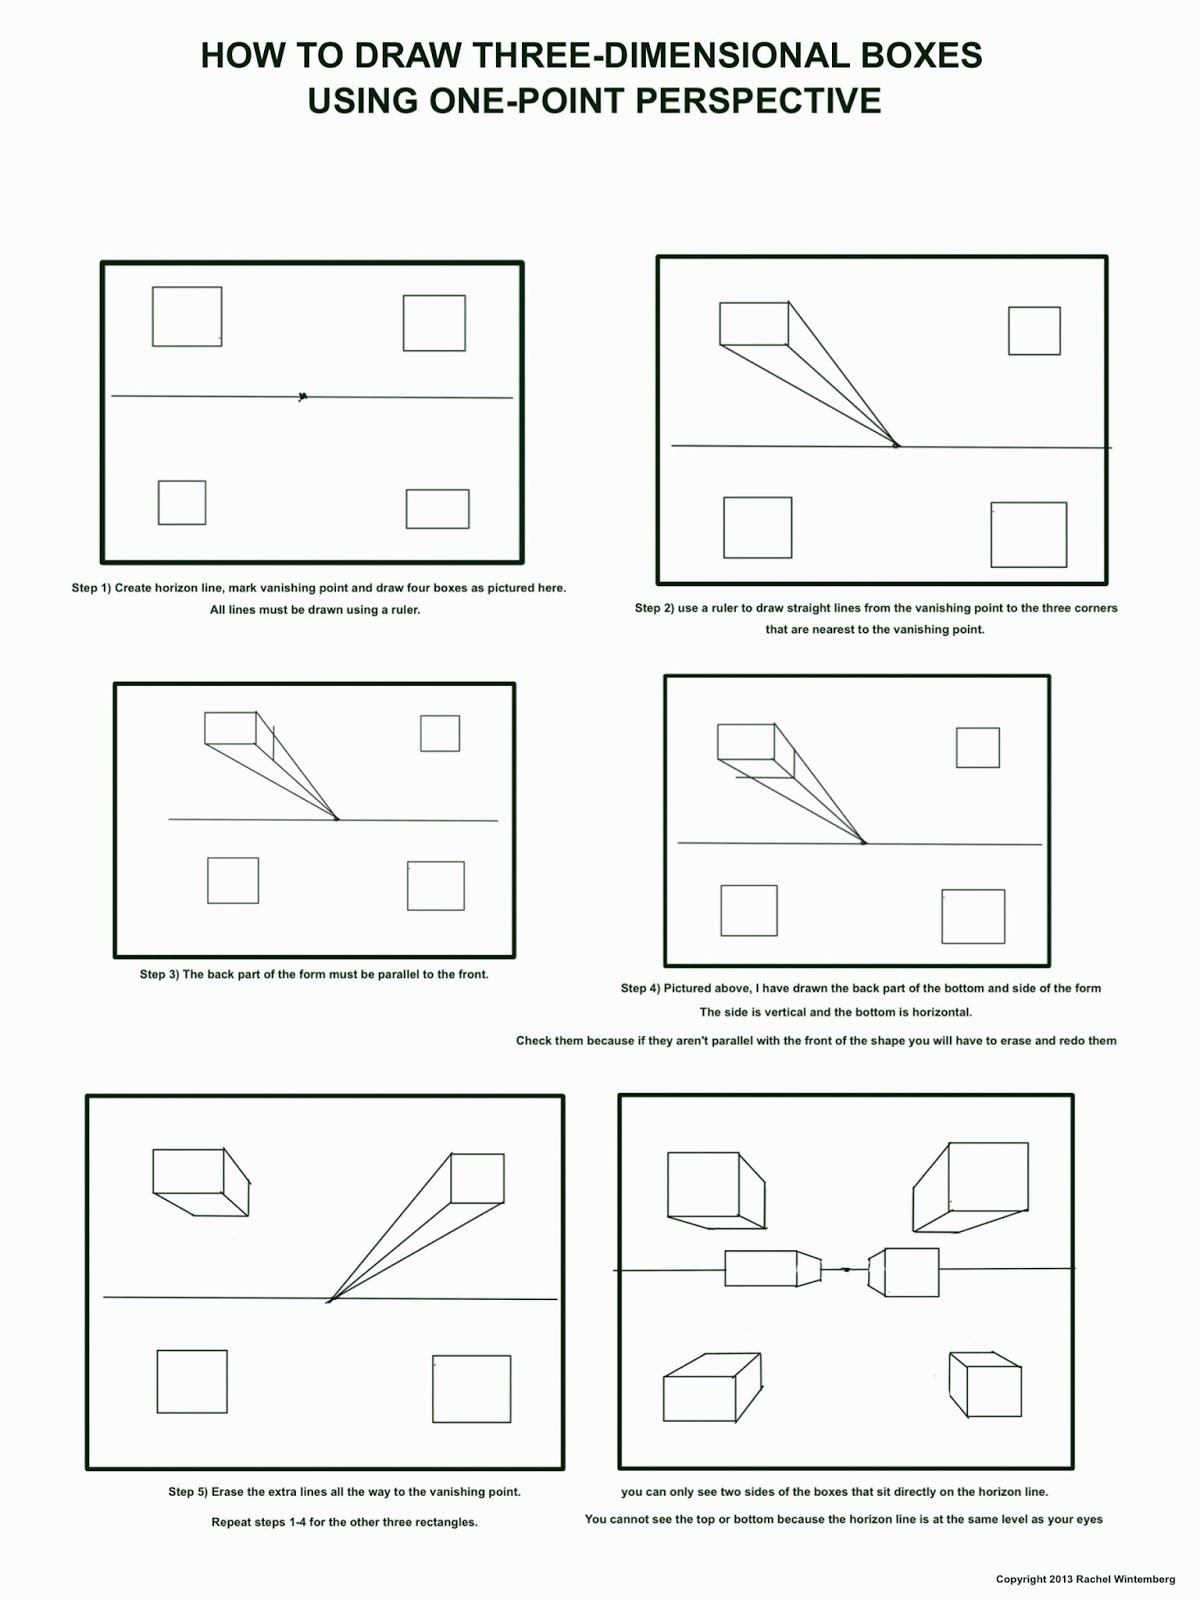 clipart free stock The helpful art teacher. Block drawing geometric perspective